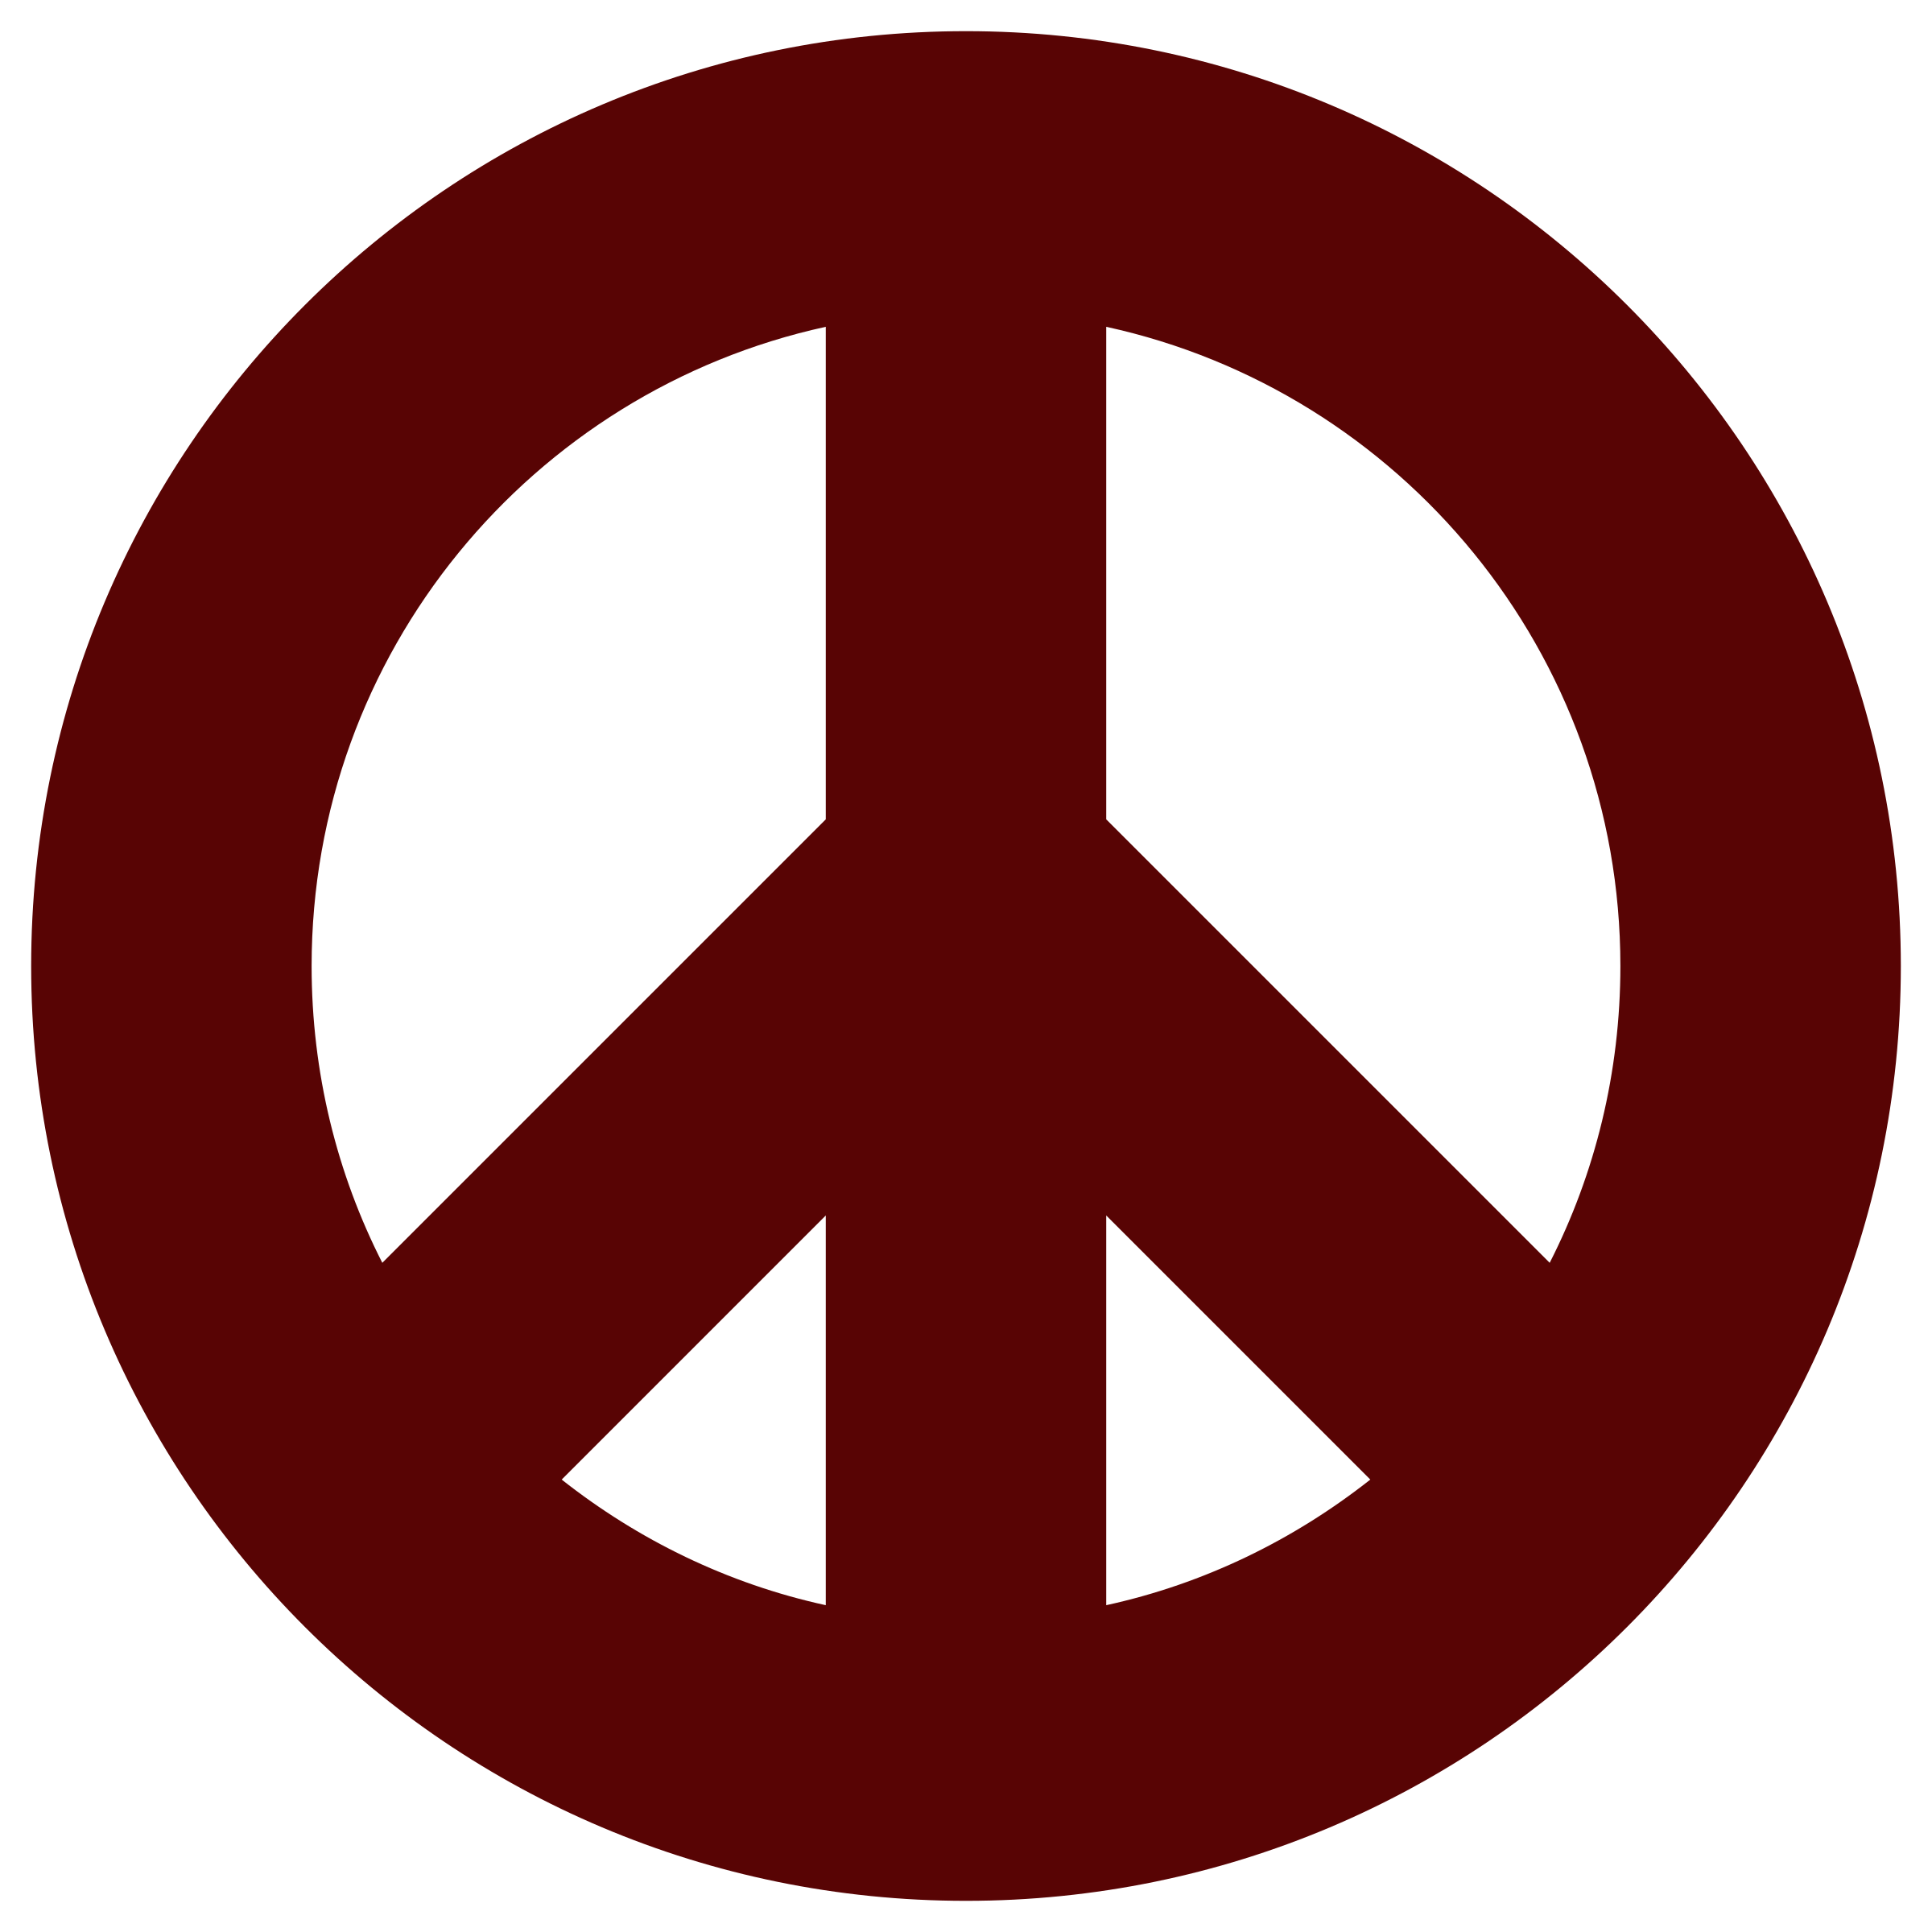 Free Peace Sign Clip Art, Download Free Clip Art, Free Clip.